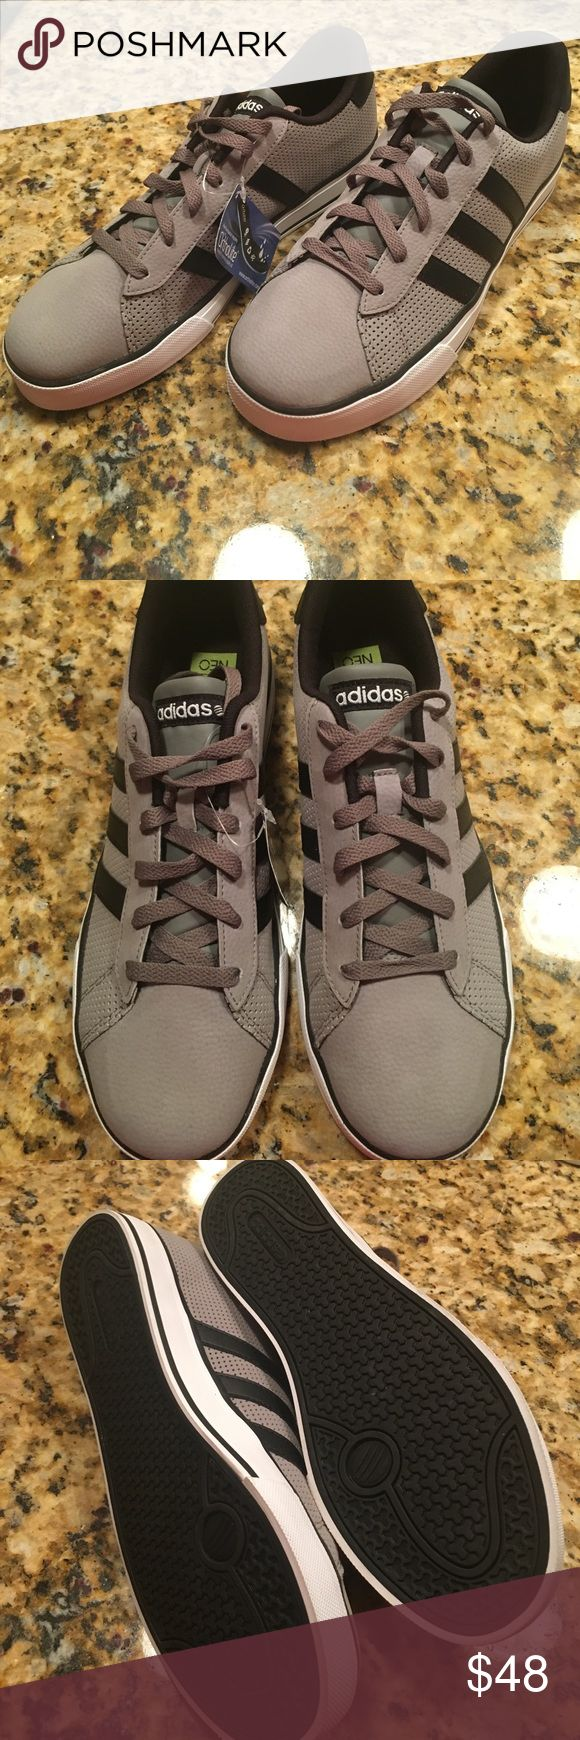 Men's Adidas sneakers 9.5 NWT Brand New Men's Adidas NEO ortholite sneakers size 9.5. Colored grey and black with perforated sides. No box. Adidas Shoes Sneakers